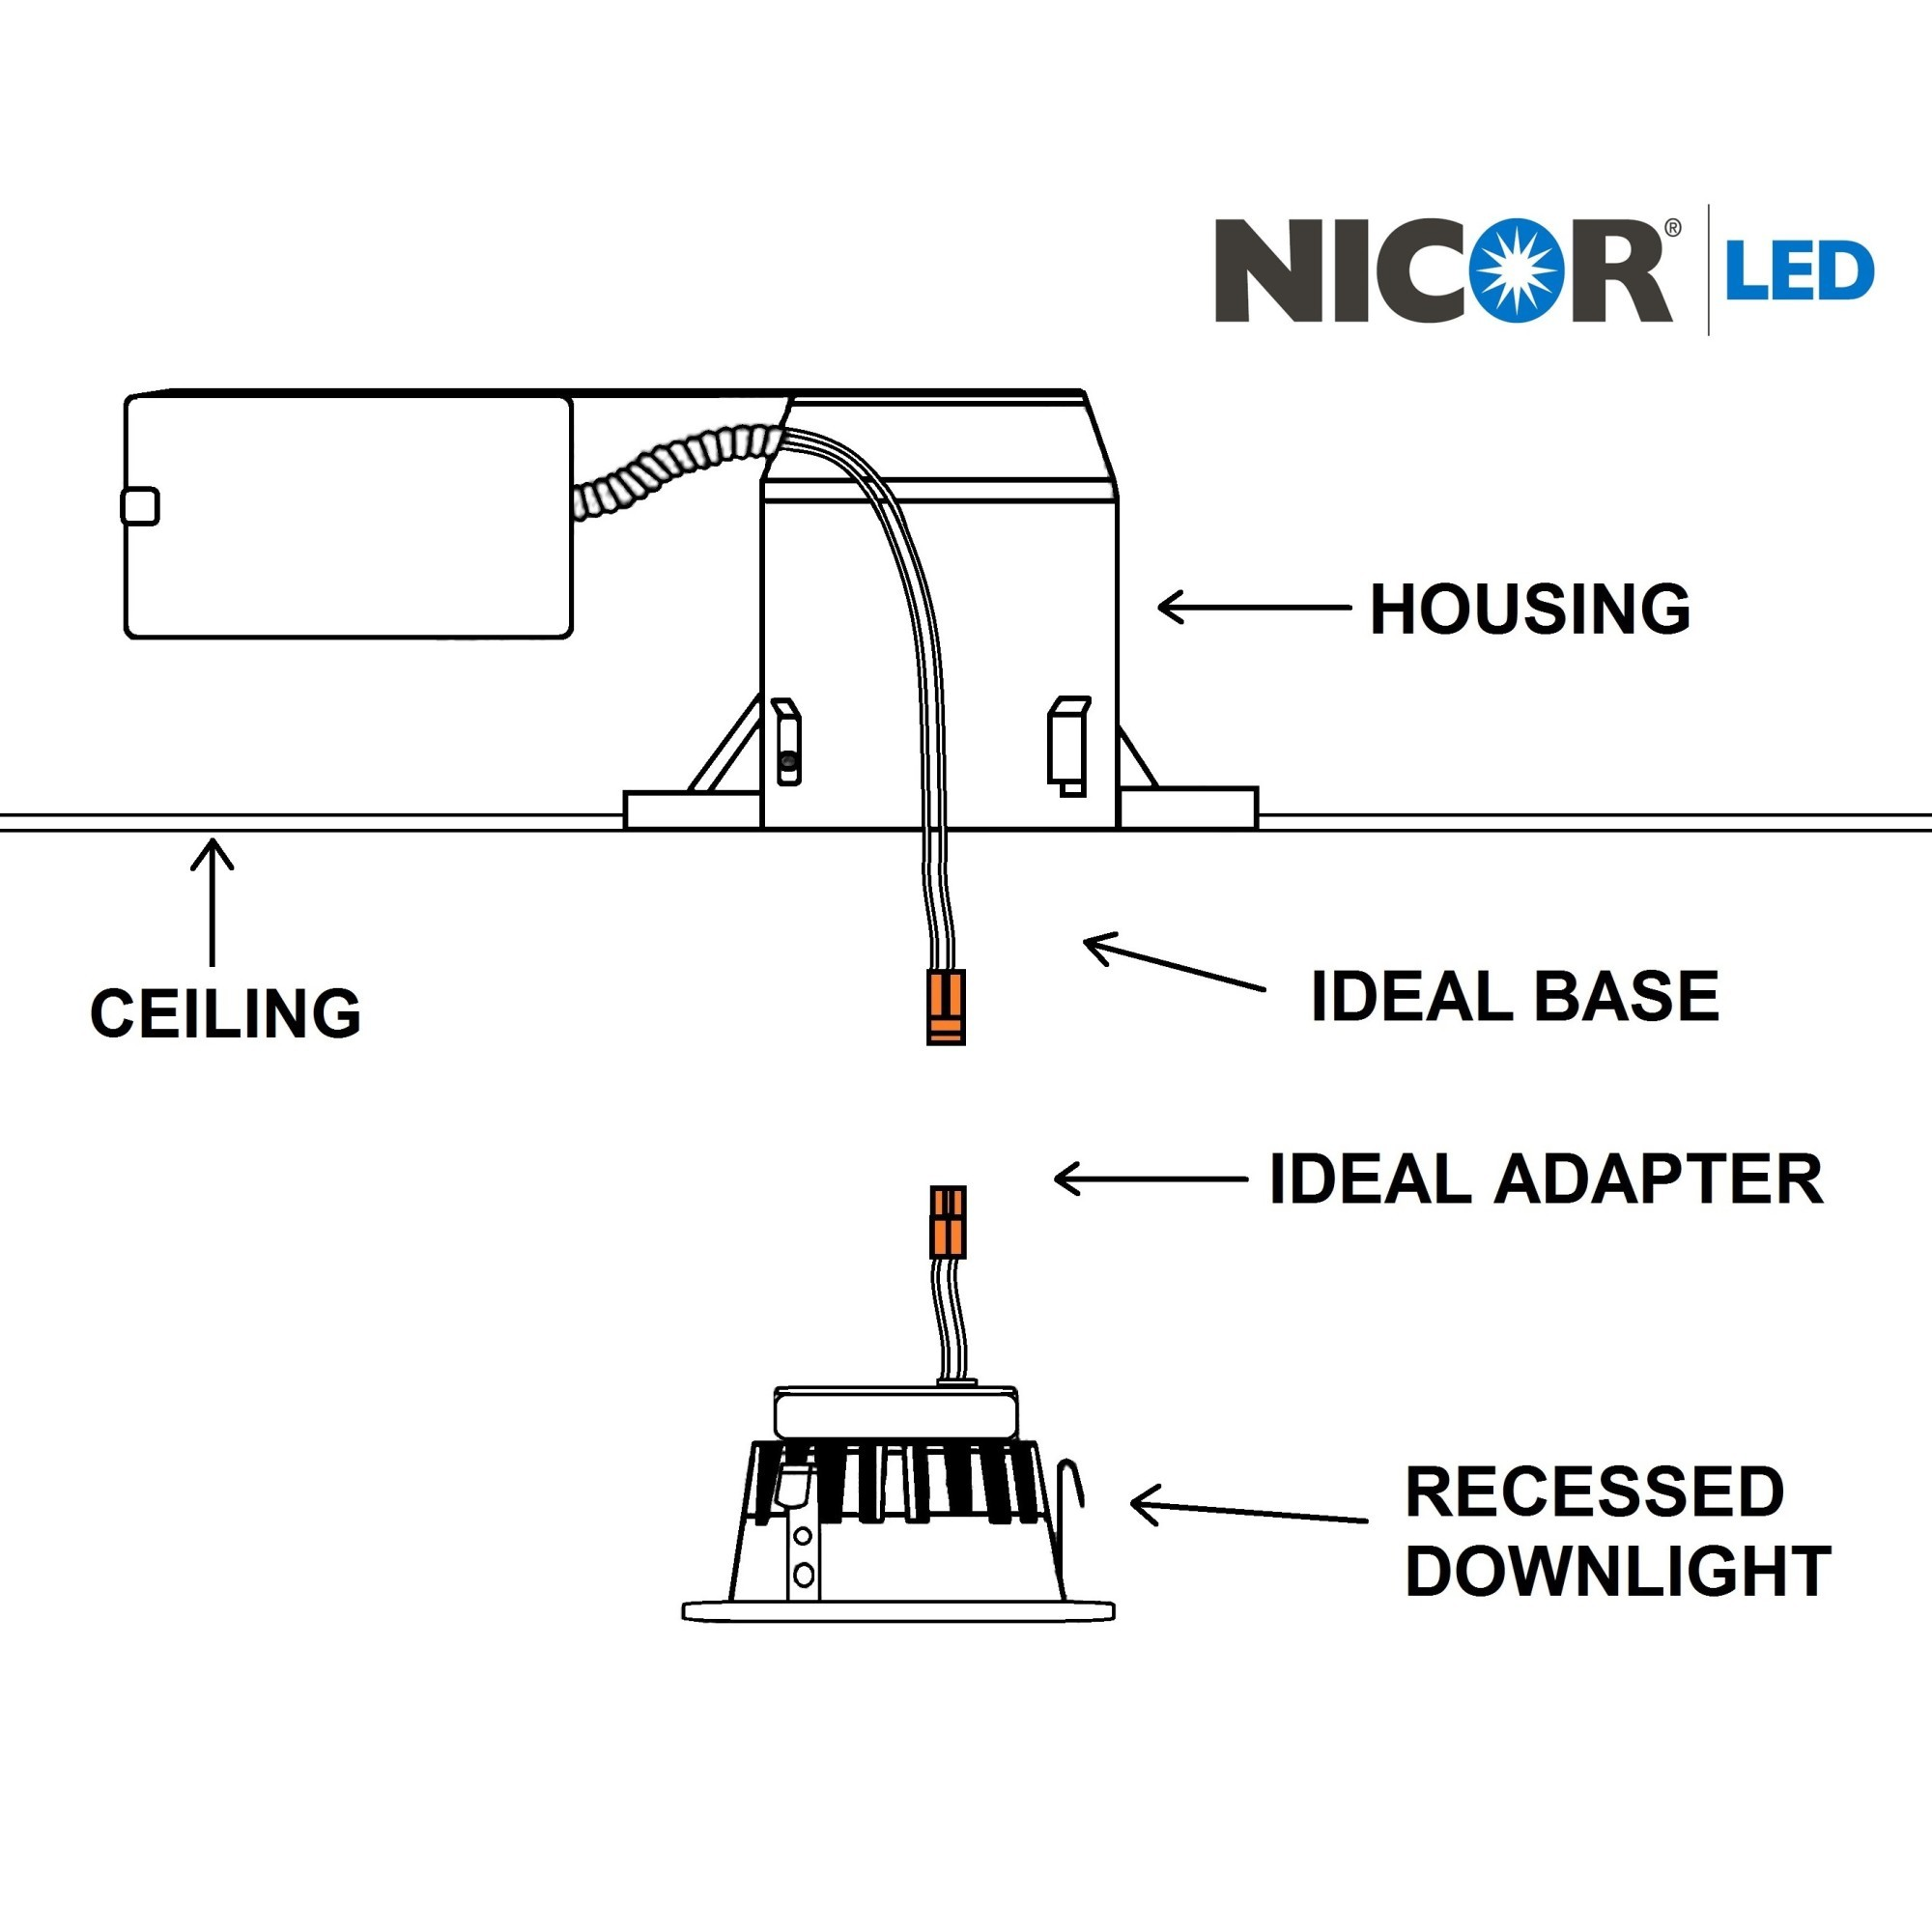 Nicor Dqr2 10 120 3k Nk Bf K 2 Inch Led Square Recessed